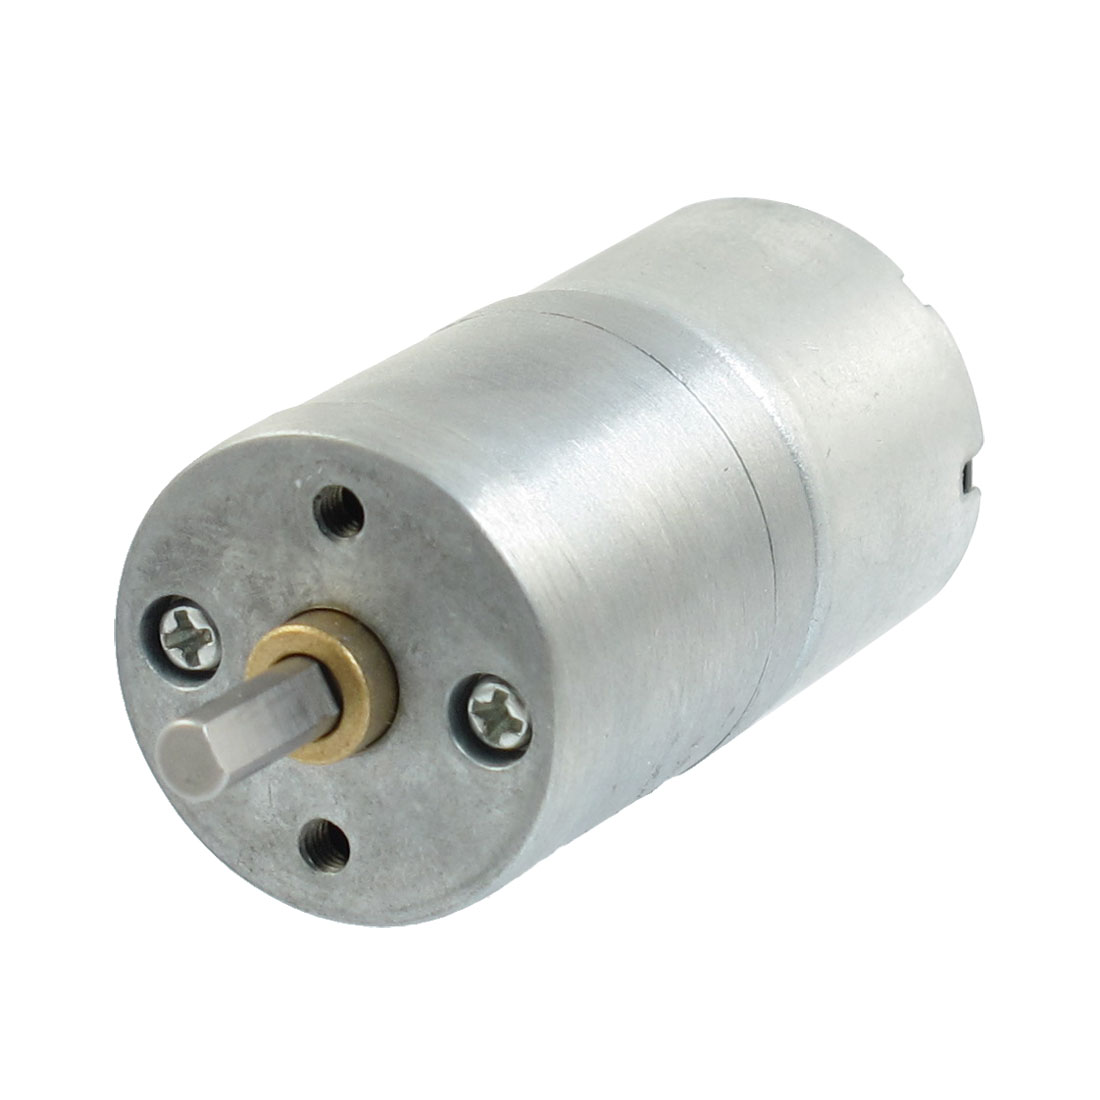 DC 6V 50mA 20RPM Rotary Speed 2 Terminals 2P Magnetic Gear Motor Reducer